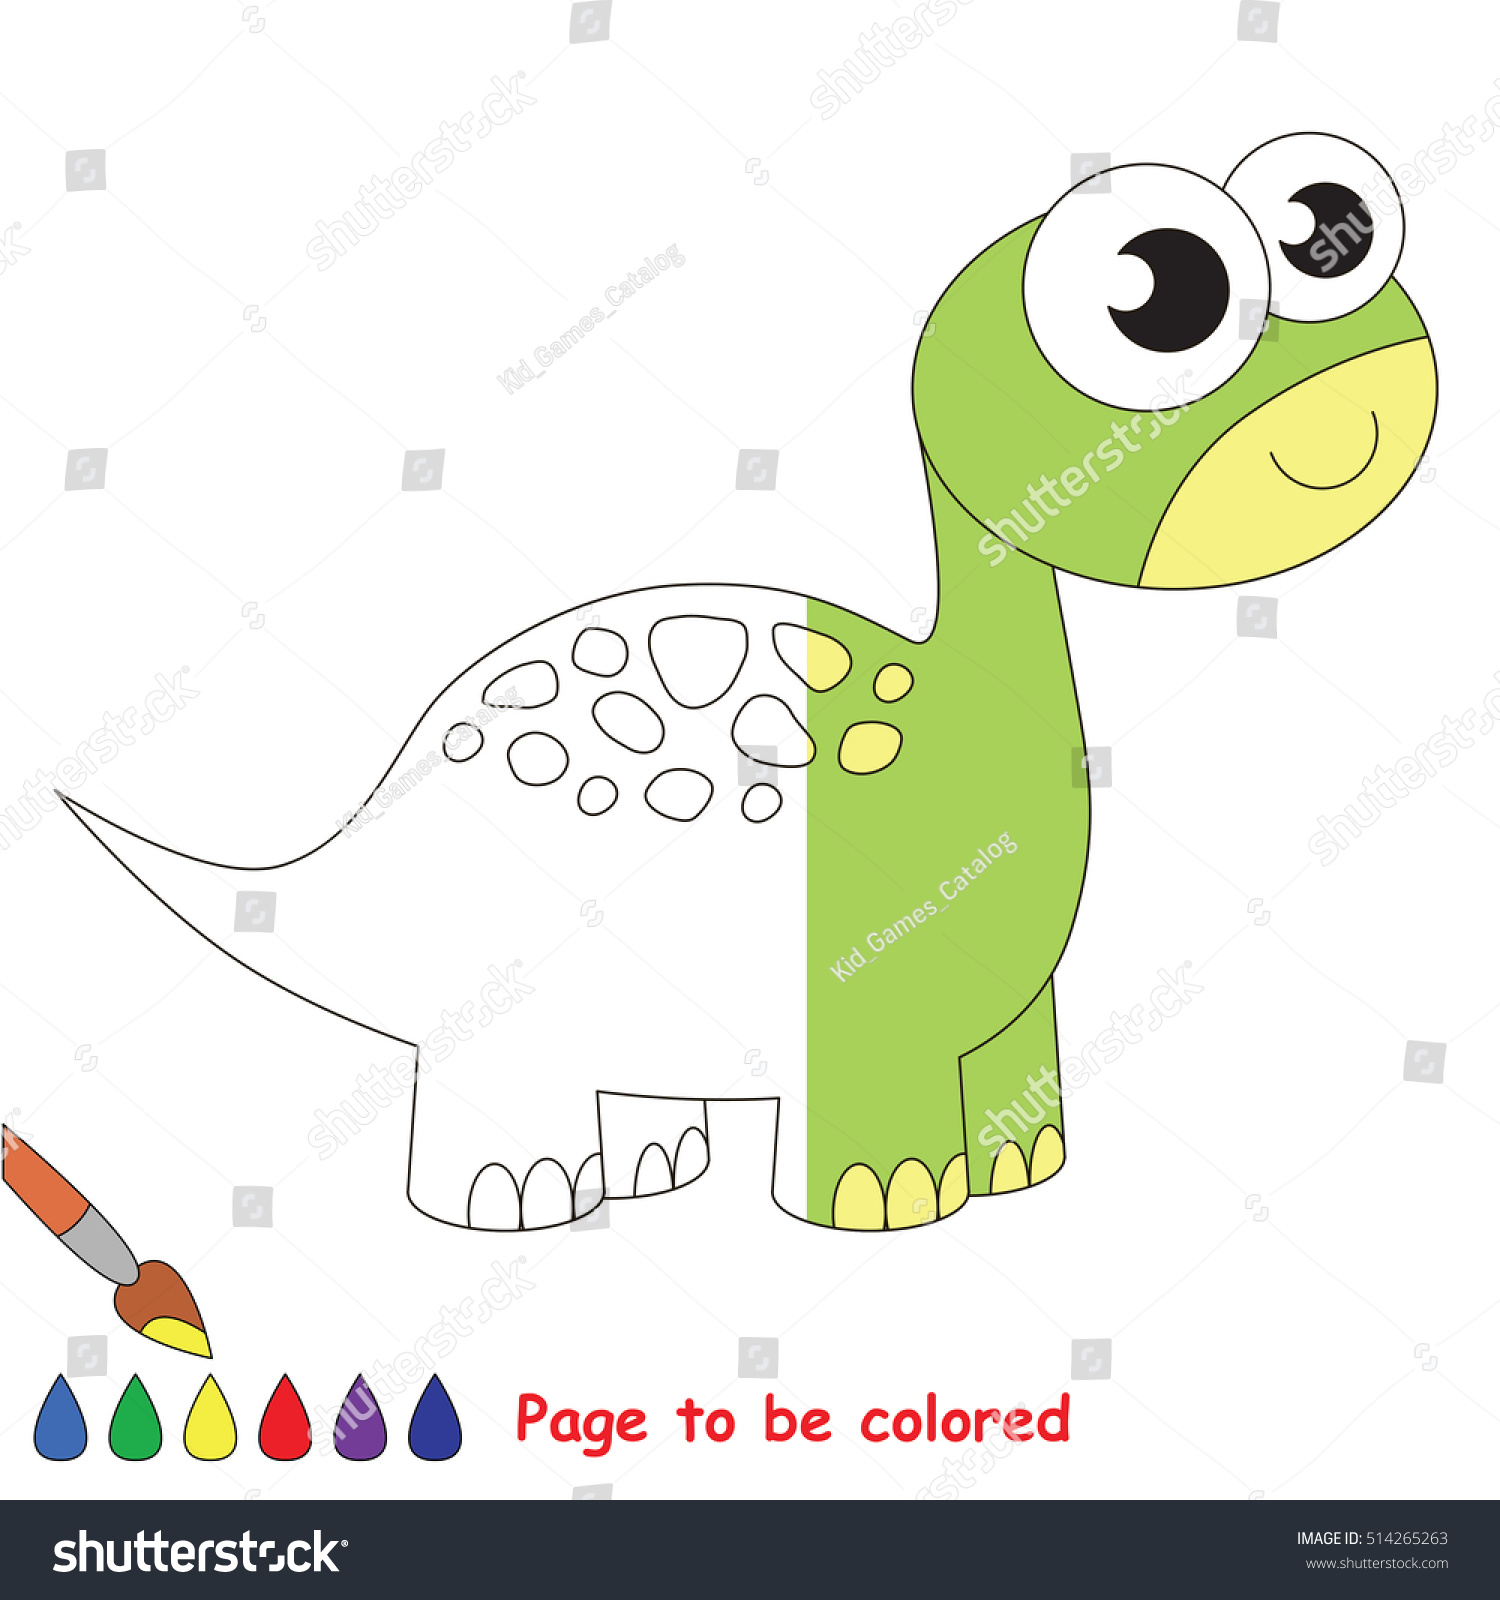 Brontosaurus Dino Be Colored Coloring Book Stock Vector 514265263 ...